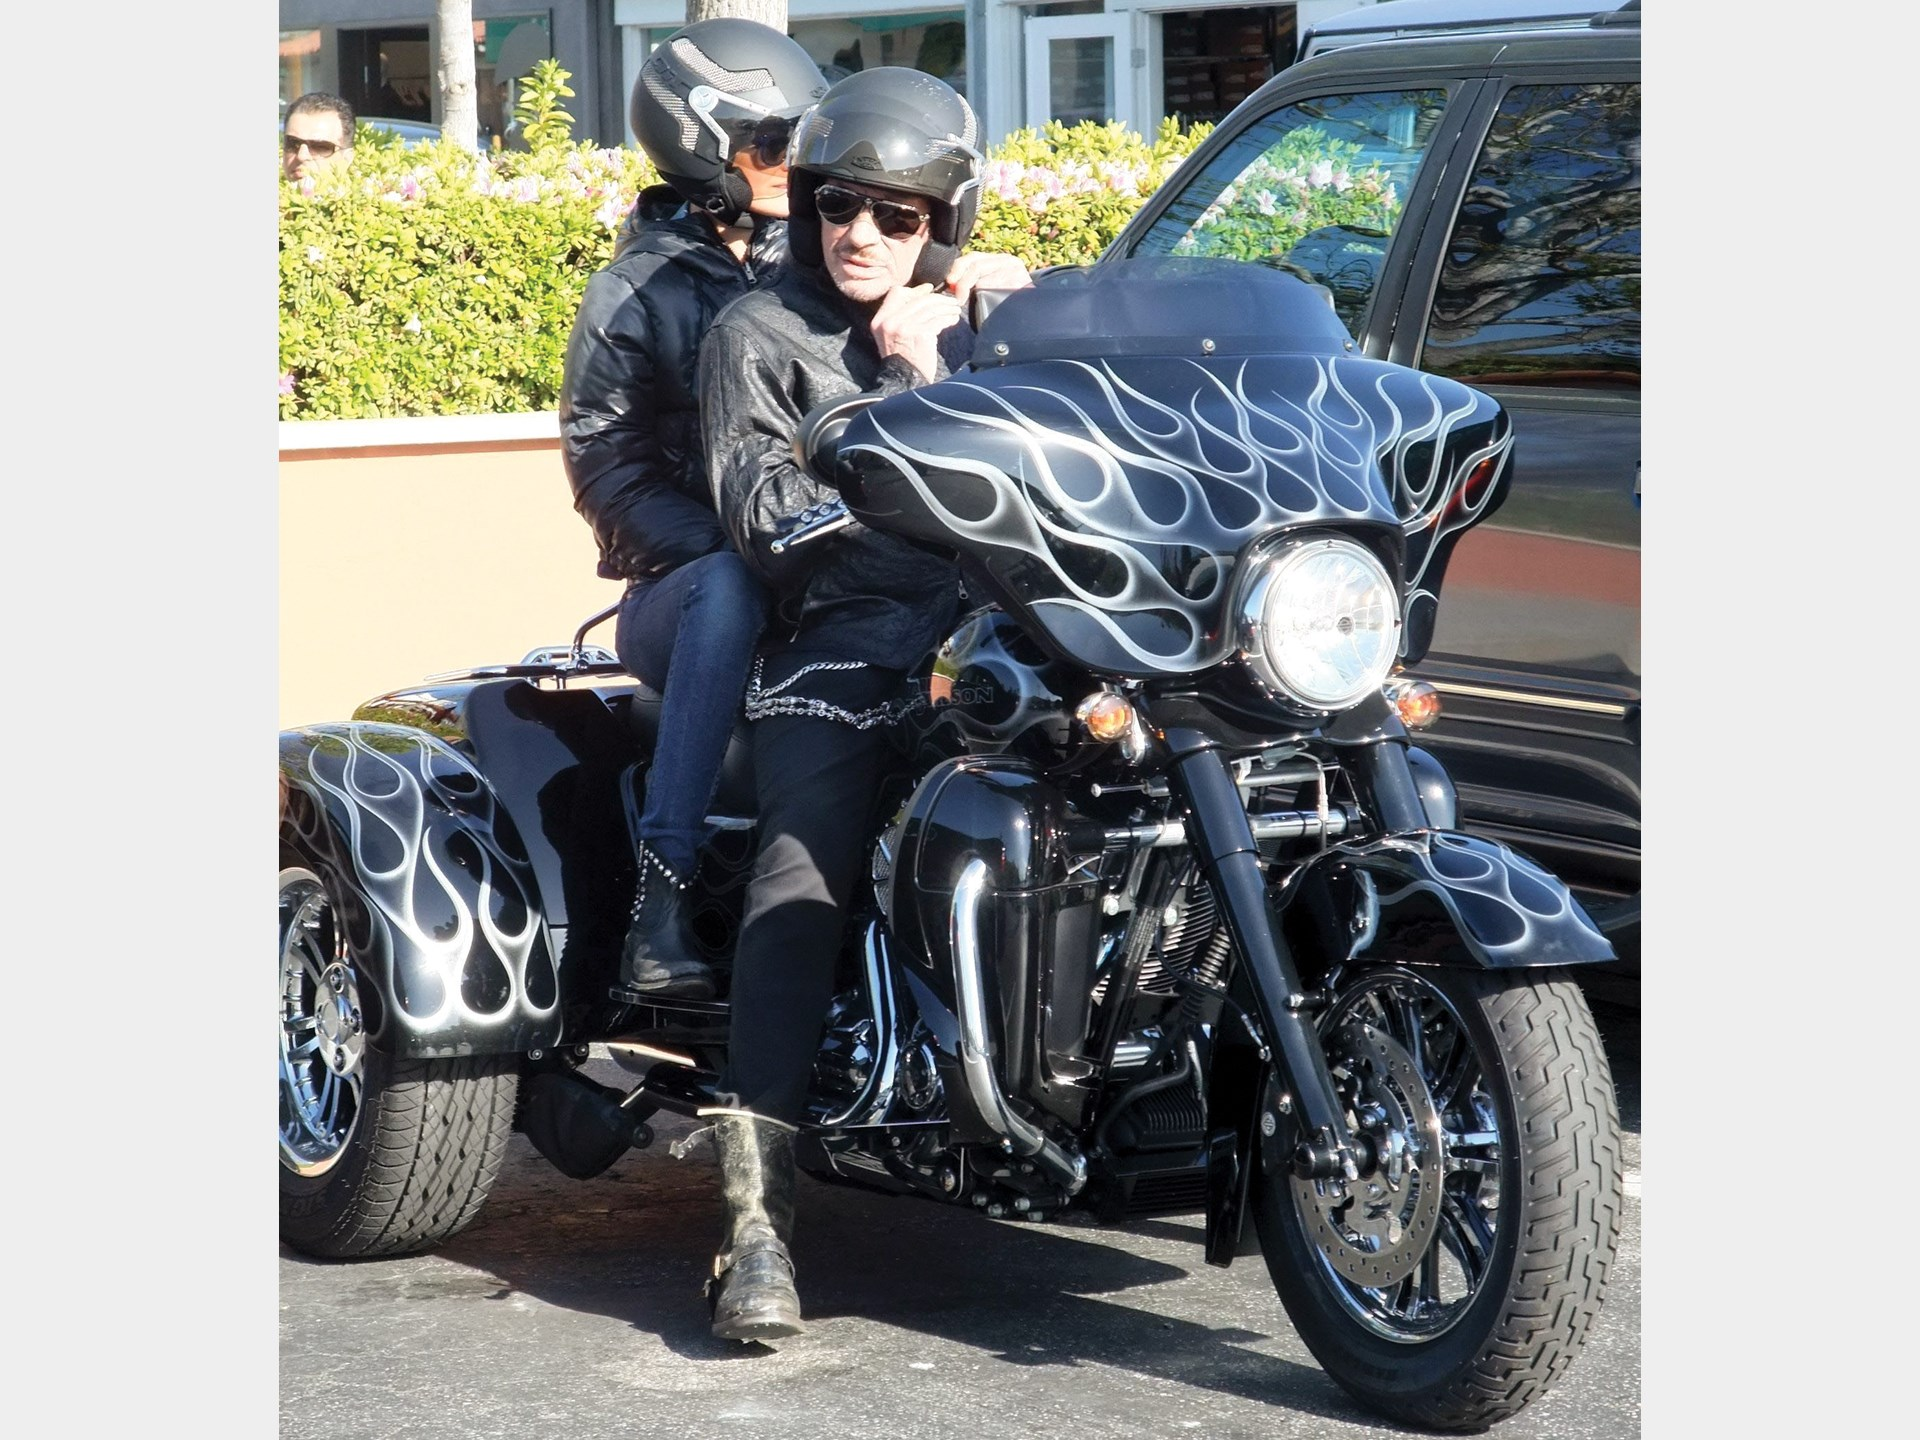 Johnny Hallyday and his wife Laeticia on their Harley-Davidson in Malibu, California in 2011.